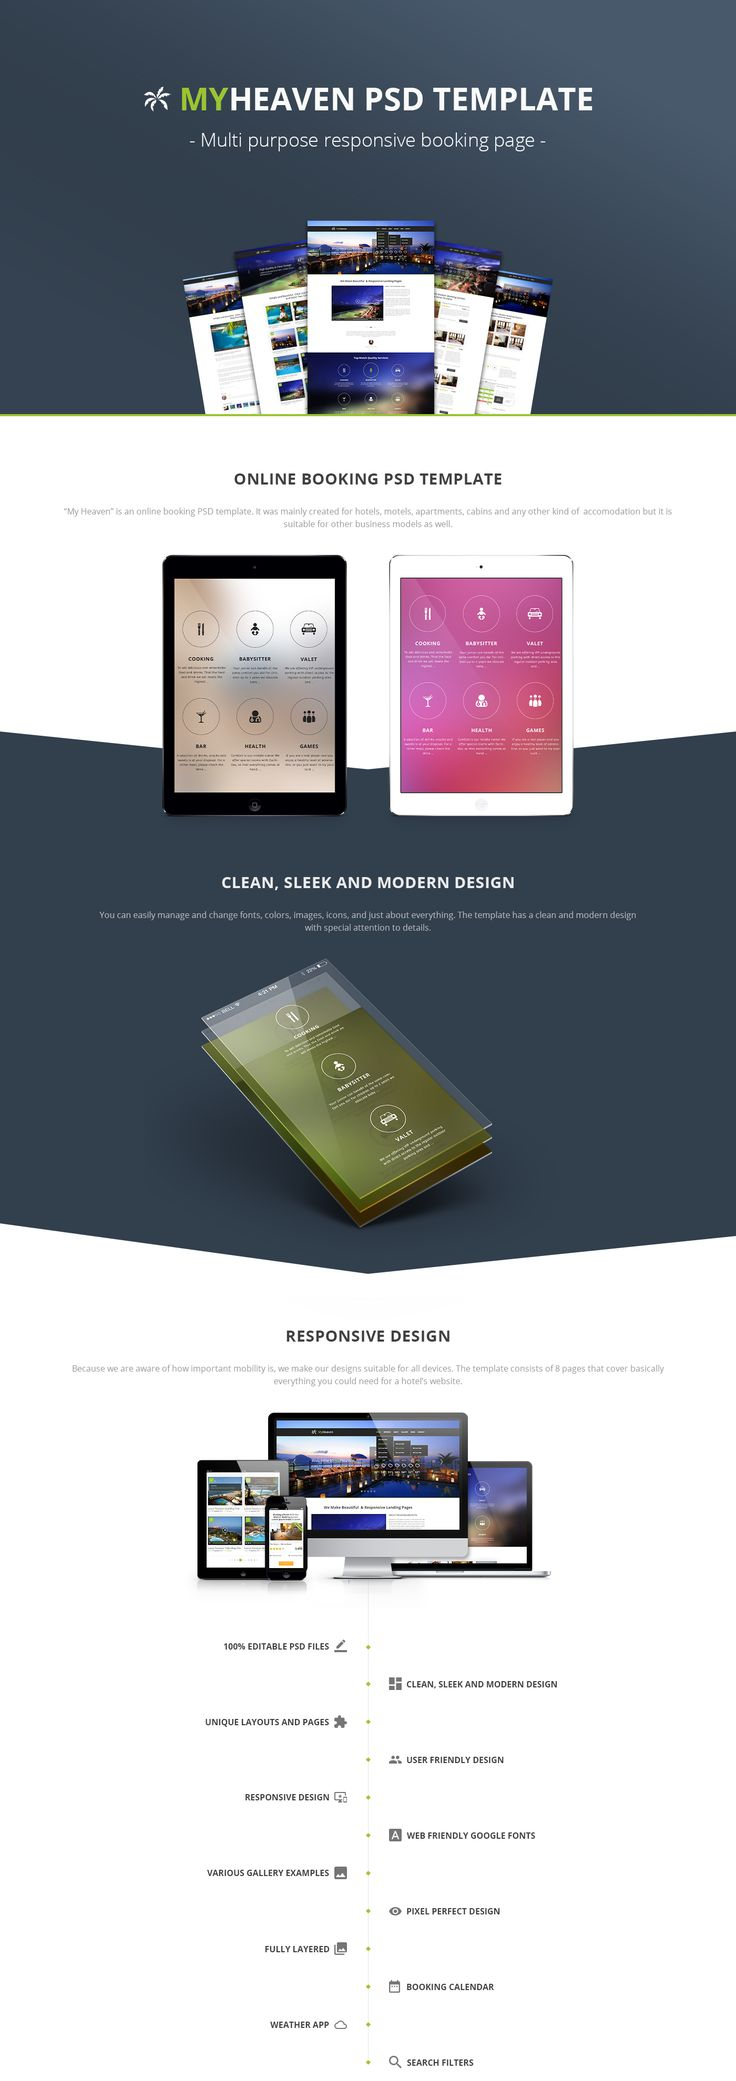 My Heaven is a clean and complete booking PSD template ideal for hotels, guest houses, villas and more.